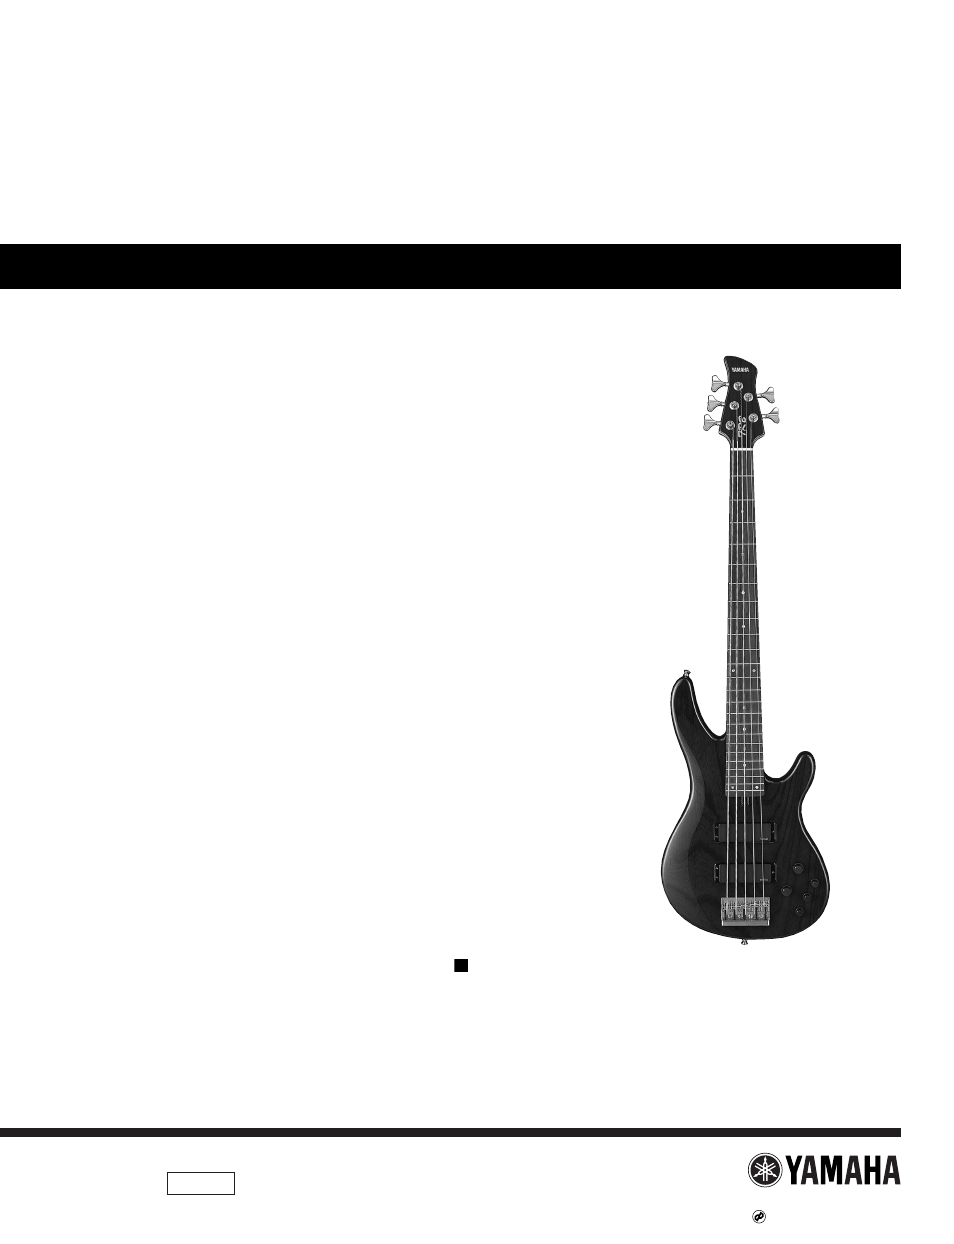 medium resolution of yamaha electric bass trb 5ii user manual 8 pages also for electric bass trb 5iif